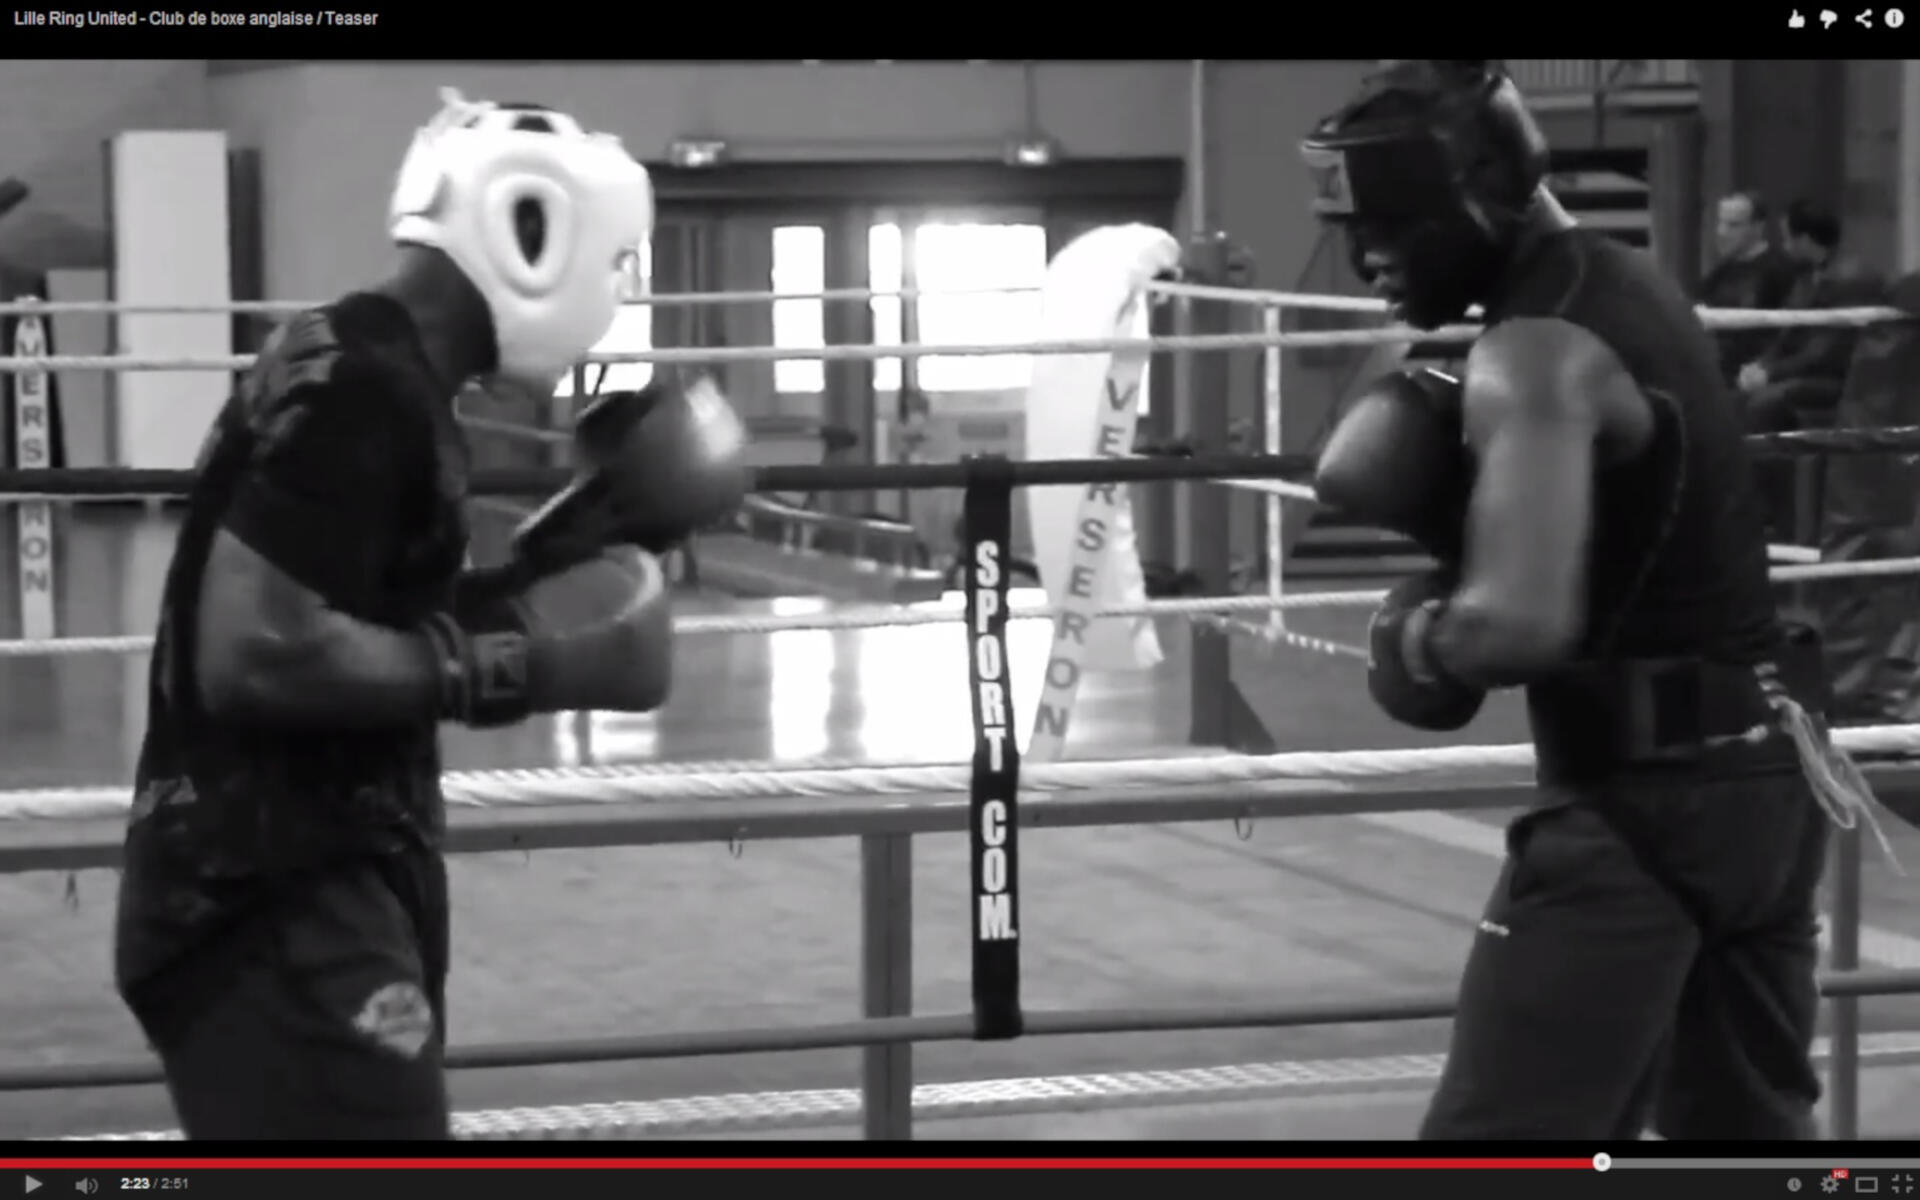 Lille Ring United – Club de boxe anglaise / Teaser